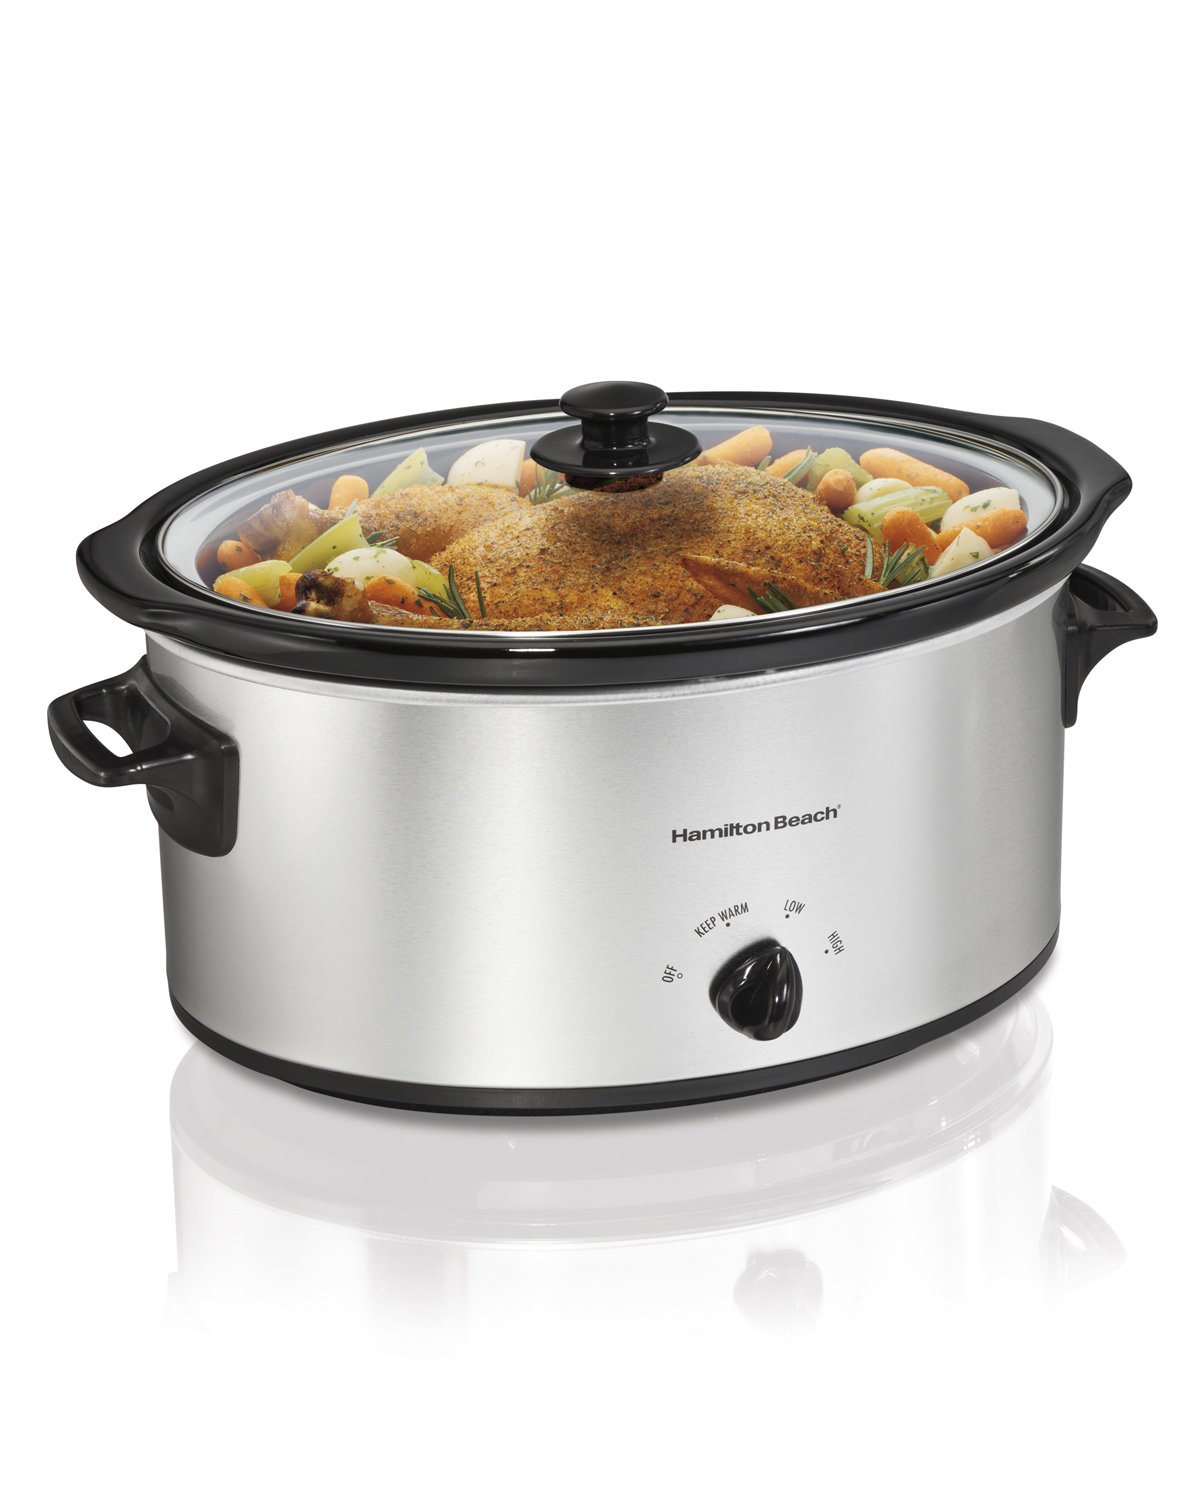 Hamilton Beach 33276 Slow Cooker, 7-Quart